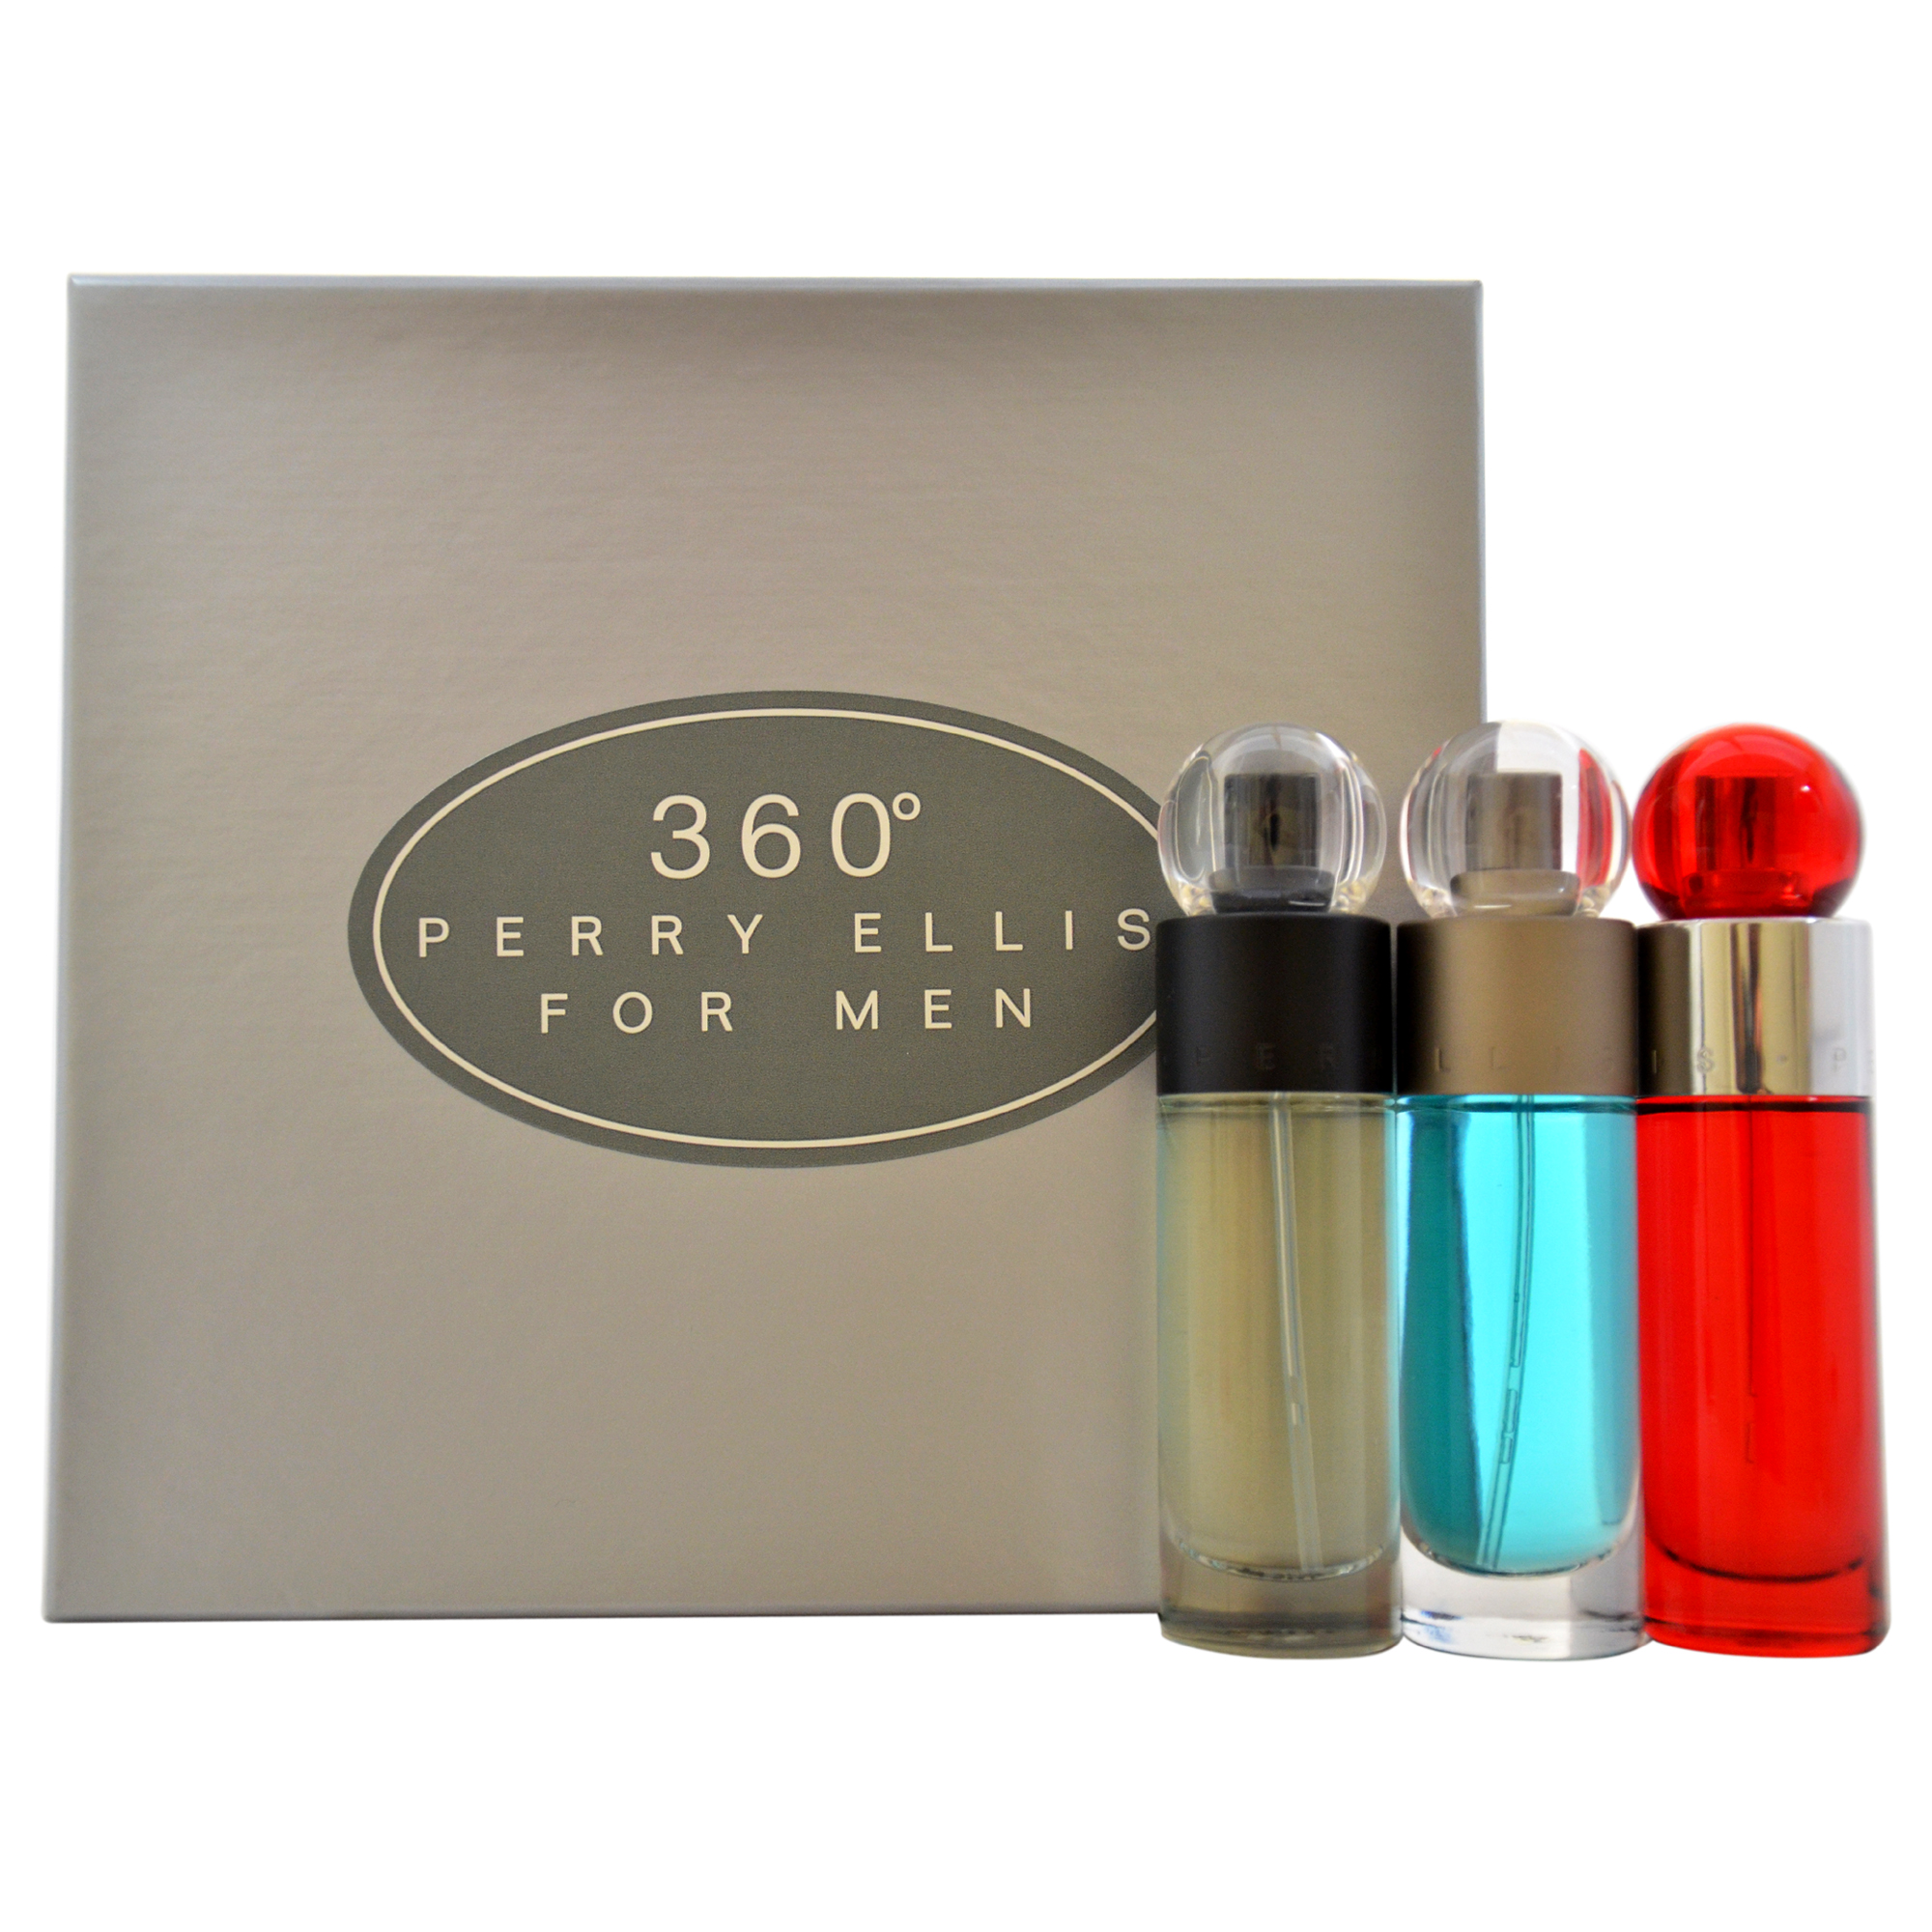 360 by Perry Ellis for Men - 3 Pc Gift Set 360 1oz EDT Spray, 360 Red 1oz EDT Spray, Reserve 1oz EDT Spray